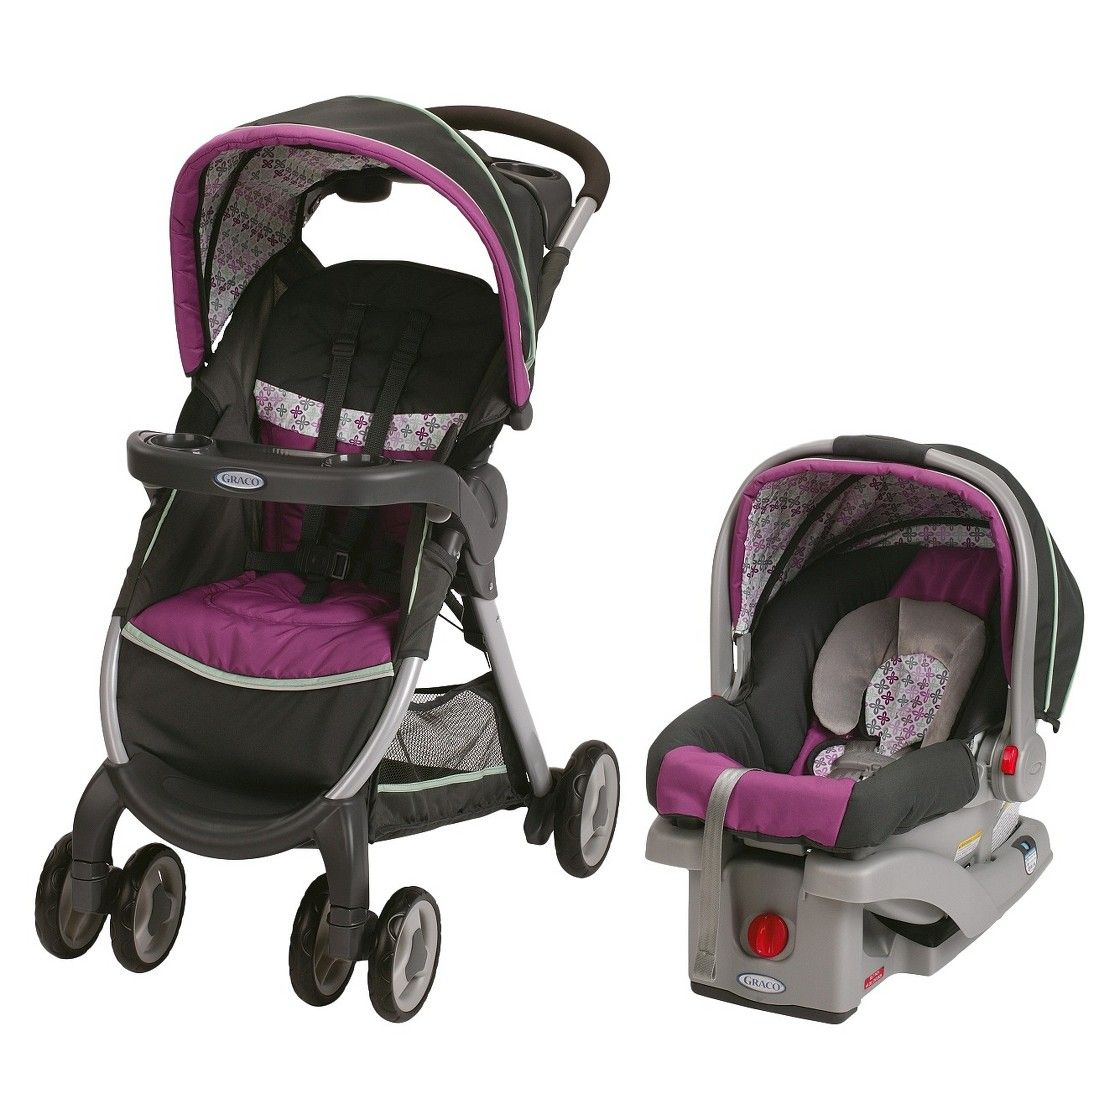 Graco FastAction Fold Stroller and Infant Car Seat Travel